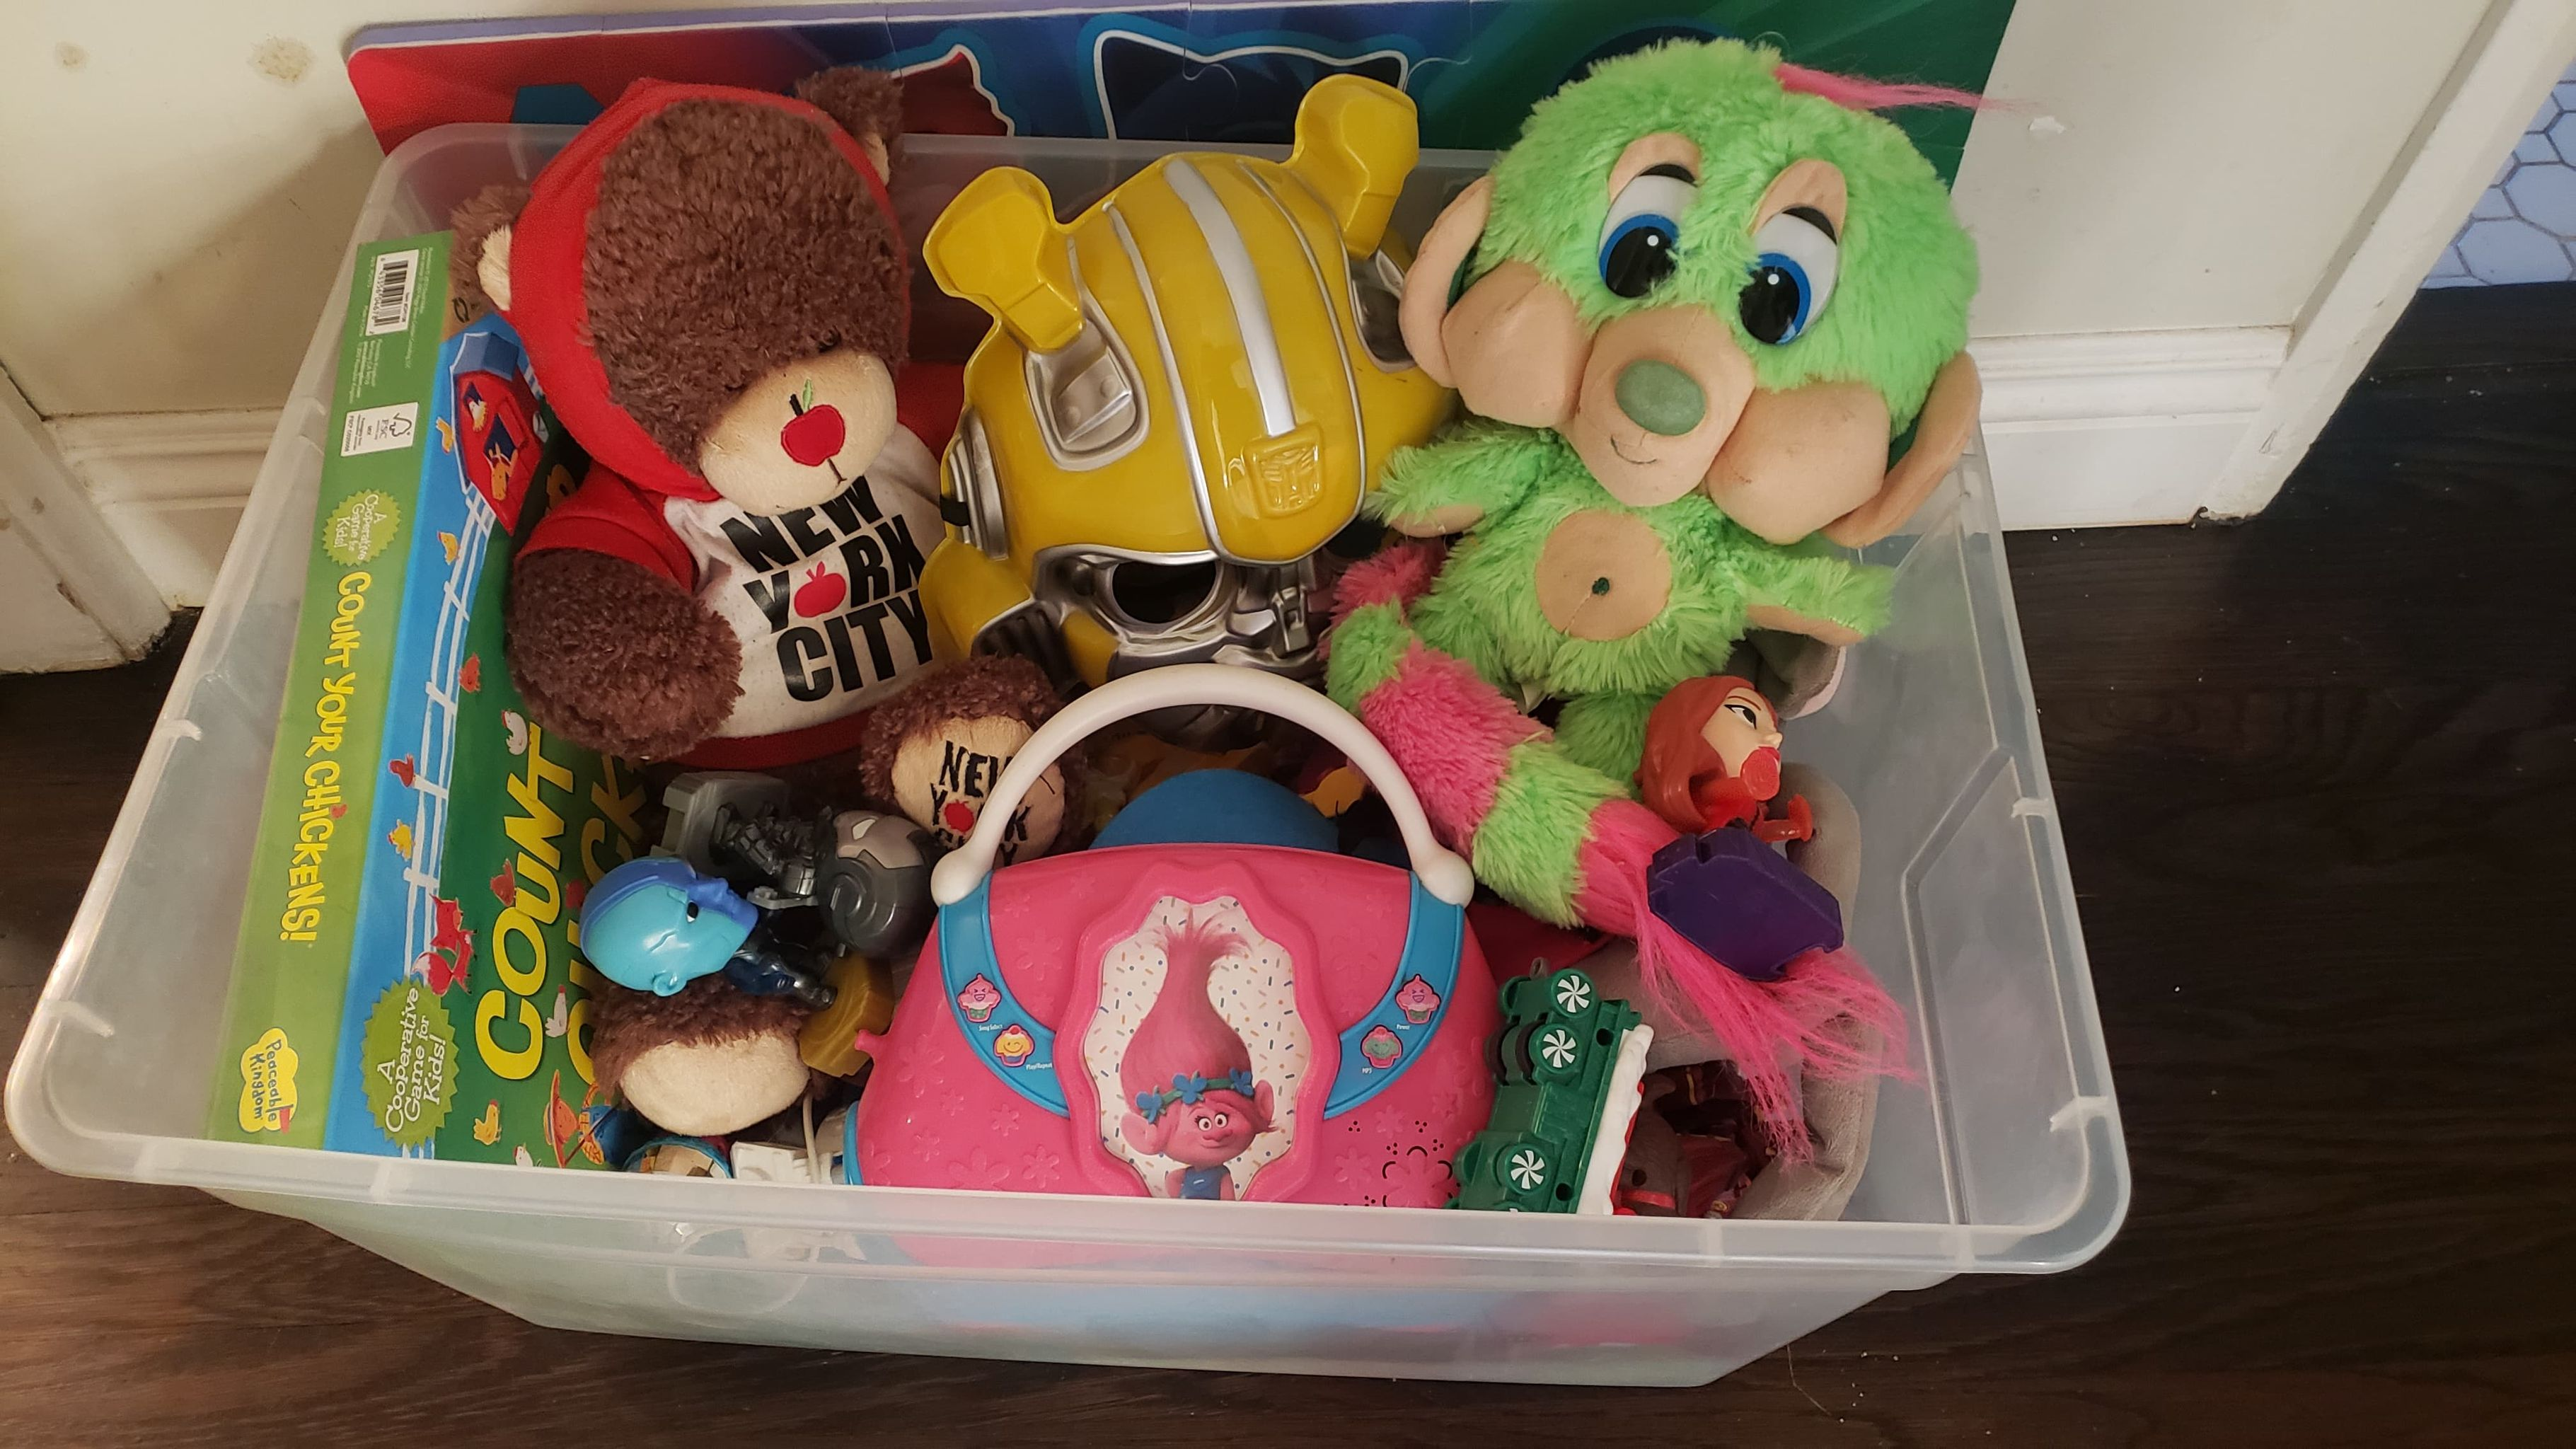 A plastic bin full of old toys to be given away.